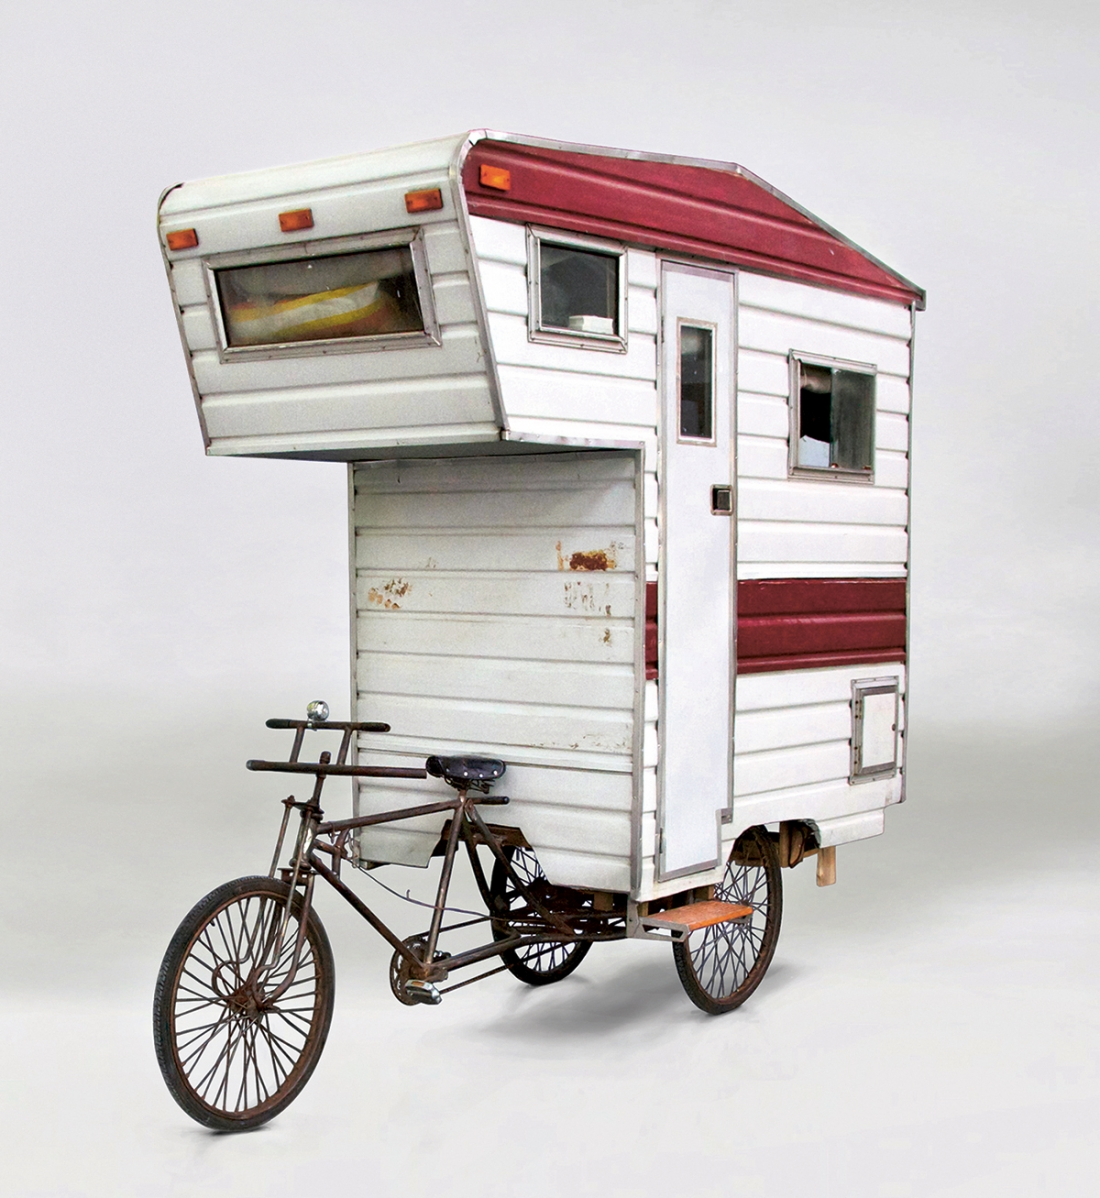 Camper Bike, Kevin Cyr, USA, 2008. Tricycle, corrugated aluminium, Plexiglas, plywood, timber. Picture credit: Kevin Cyr